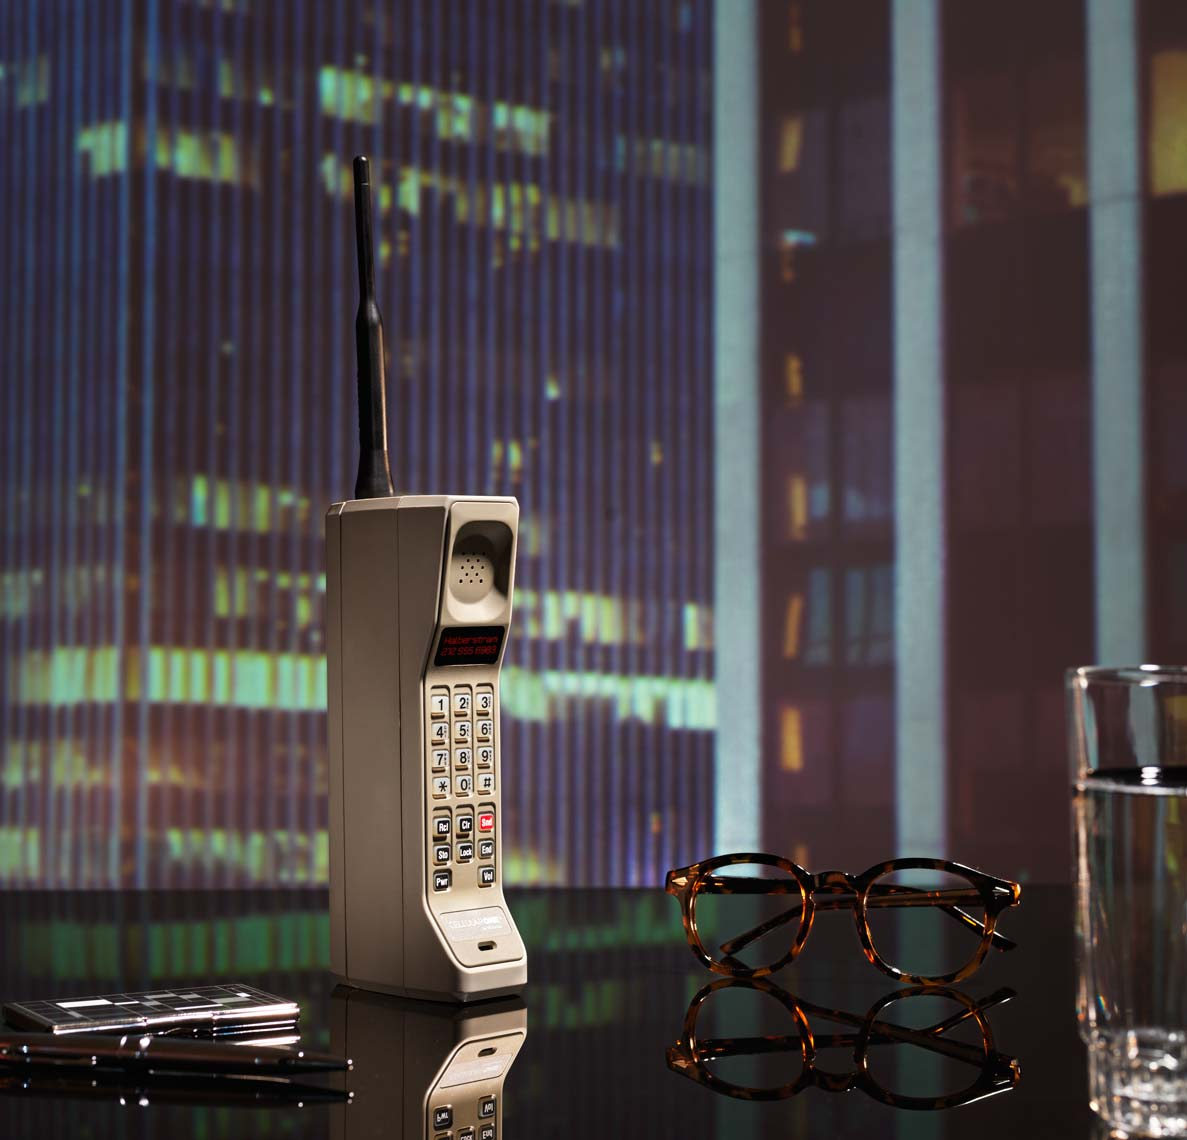 patrick bateman office still life brick phone